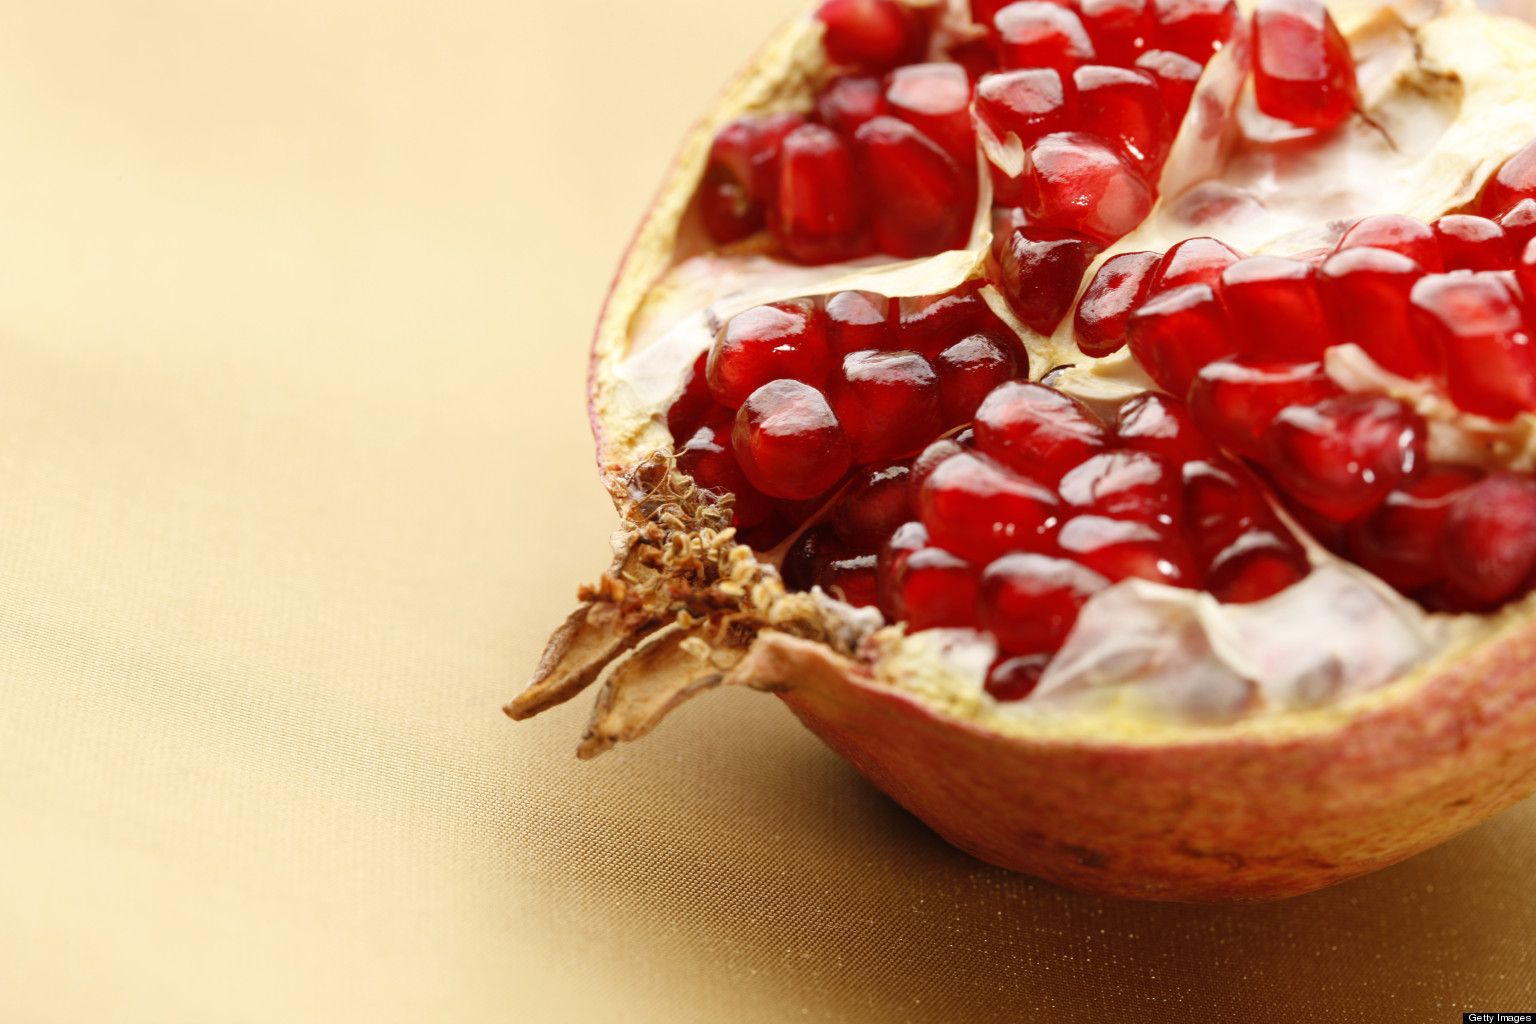 Pomegranate Fruit on Gold Background